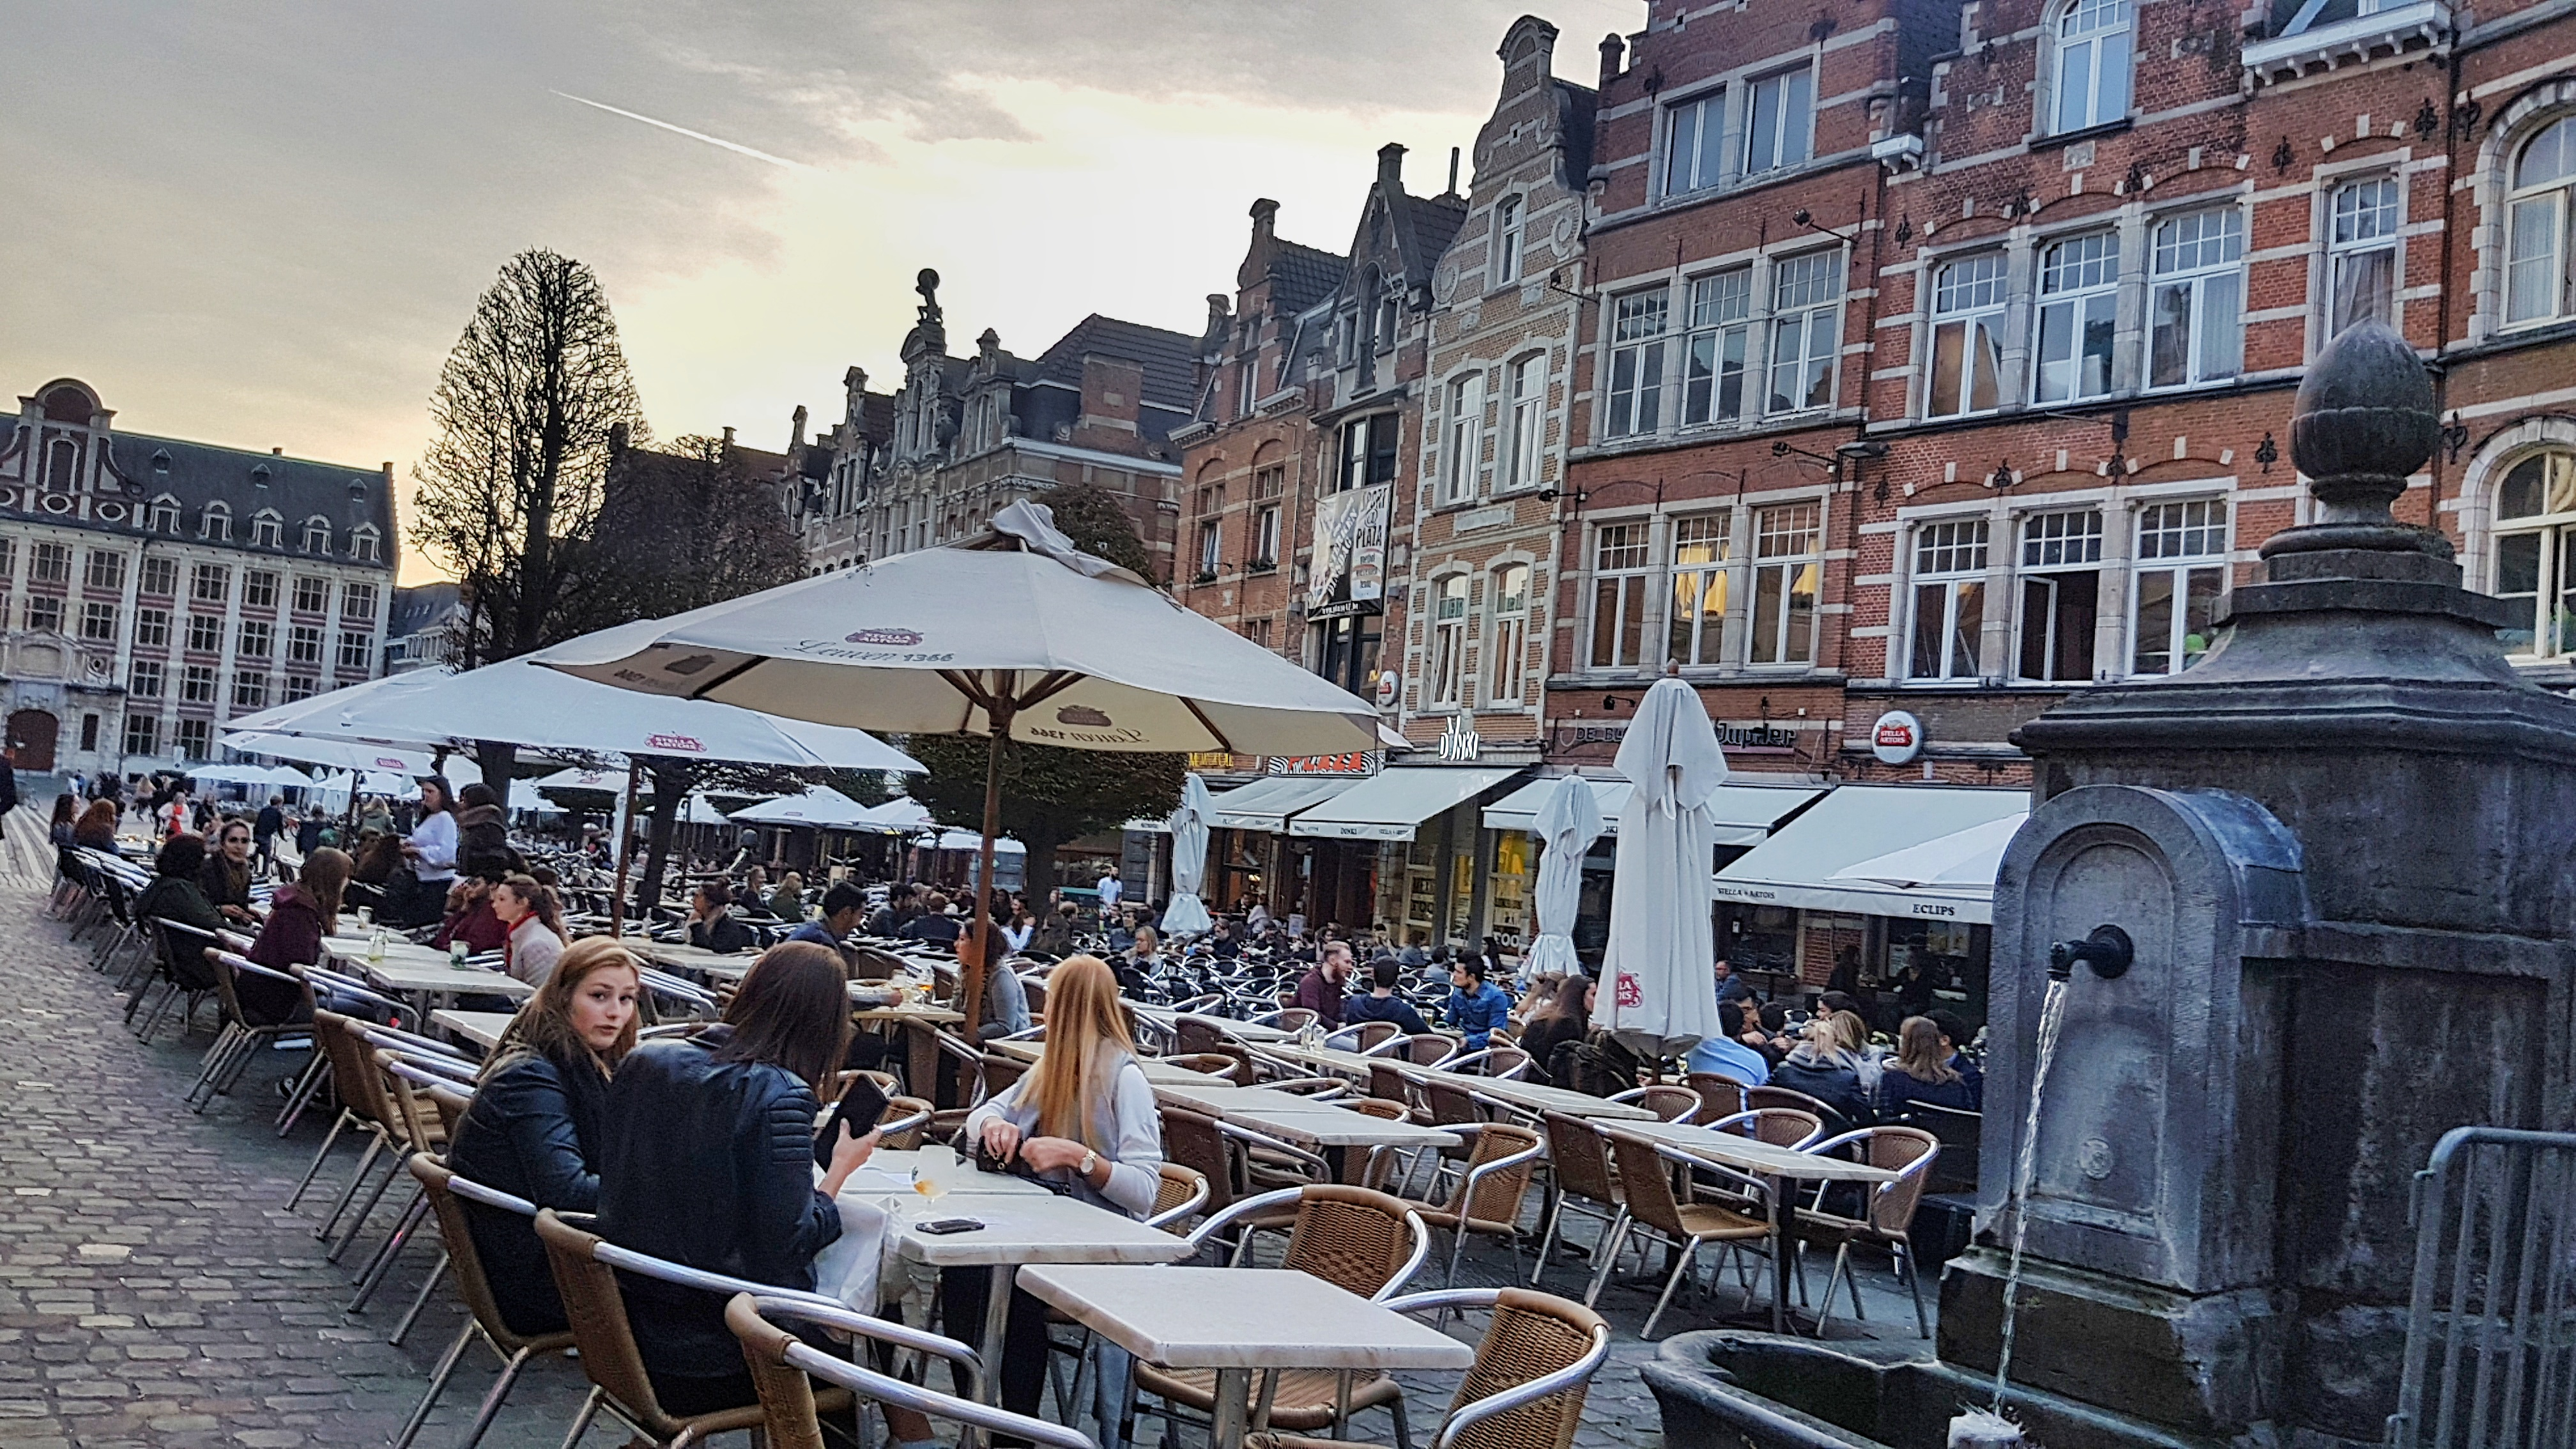 Oout Markt Leuven, read more about what you can do in Leuven in 48 hours at www.whatsupcourtney.com #Leuven #travel #travelguide